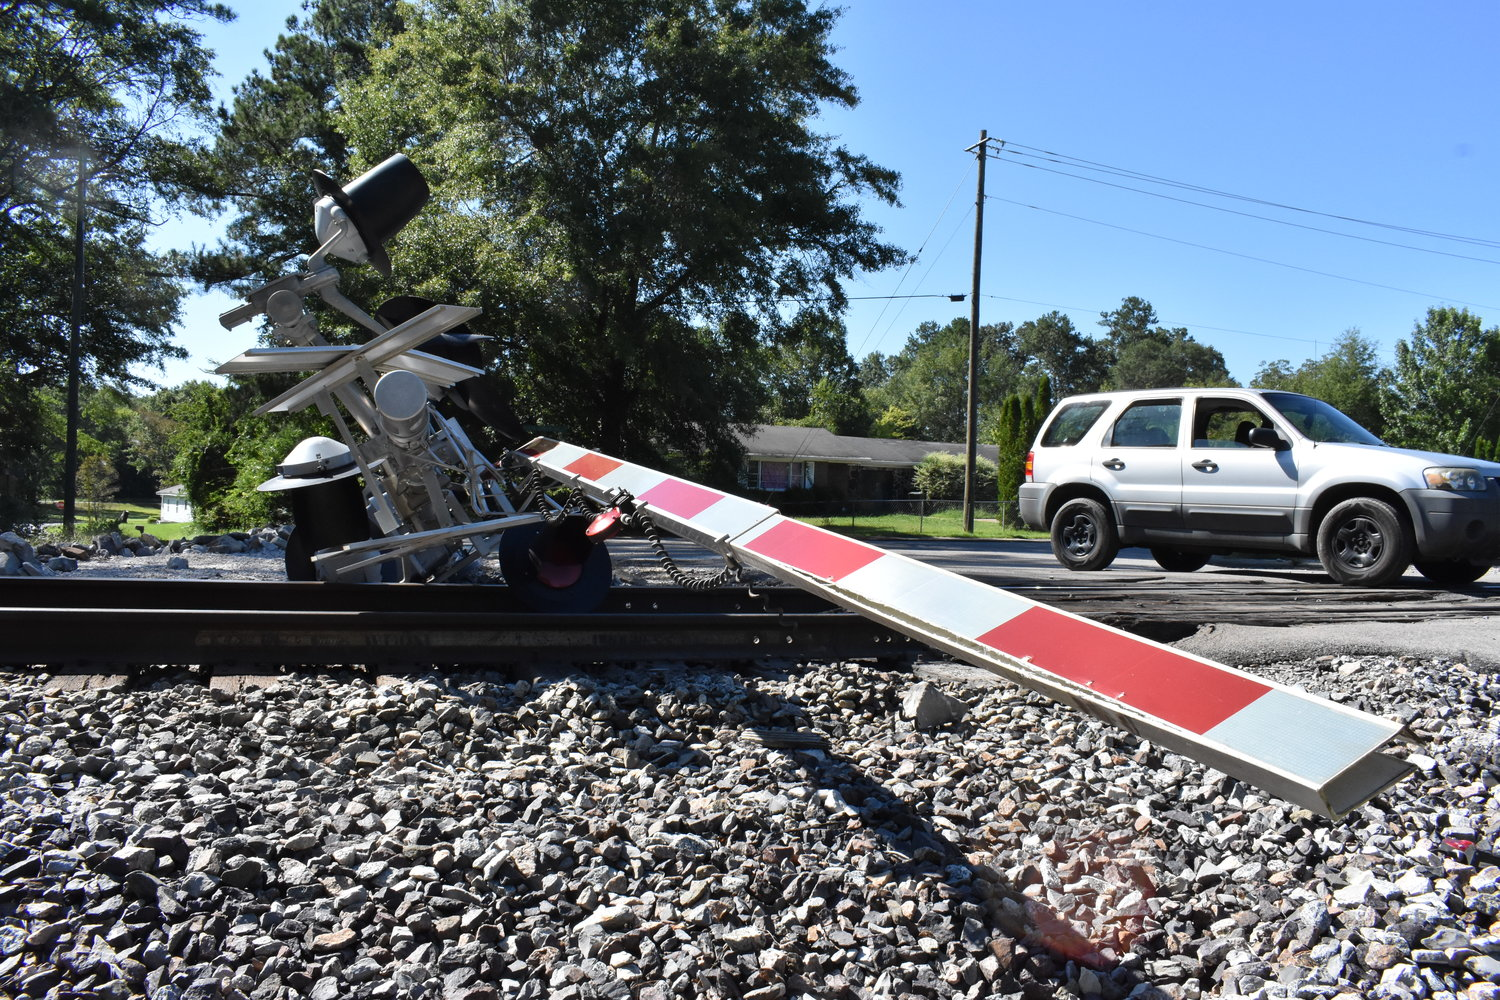 A railroad crossing arm in Jasper was upended by an accident and brought to lay across the track on Thursday afternoon in Jasper, just east of the intersection of Marion Luther King Jr. Drive and 30th Street. A vehicle apparently involved in the accident was abandoned and later removed. Public safety officials said the accident may have been caused when the car hit a power pole, which may have then brought down the arm.